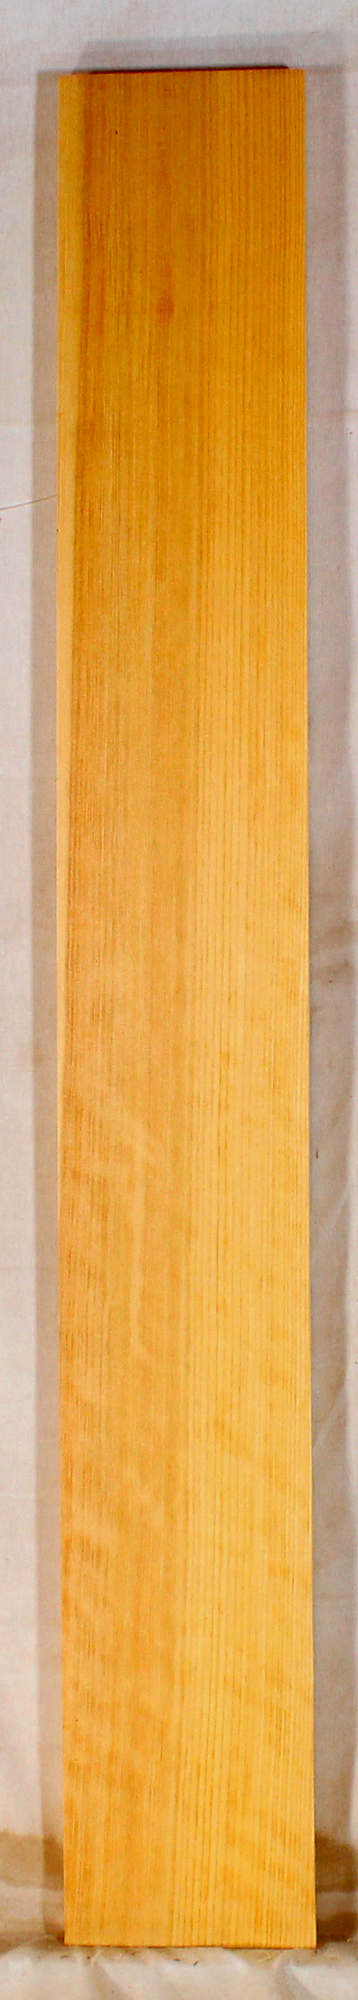 Port Orford Cedar Guitar Neck